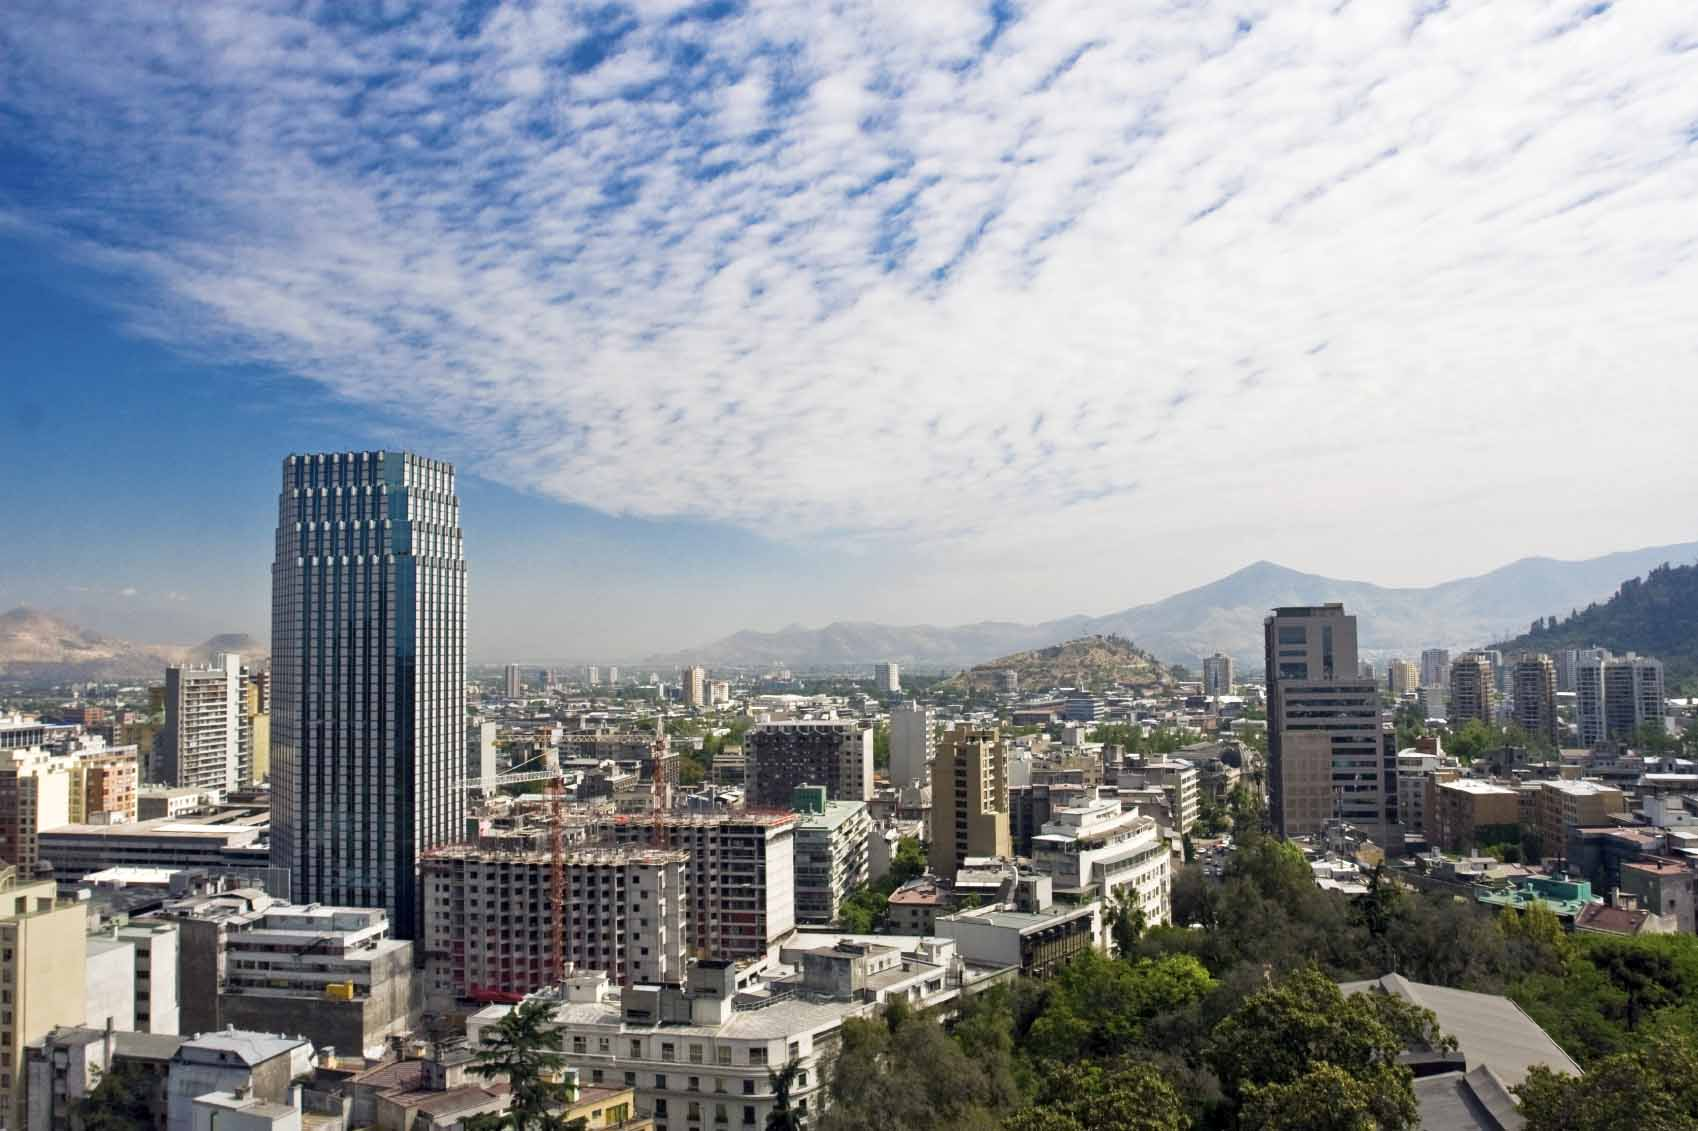 Expanding the FITTskills international trade training program into Chile